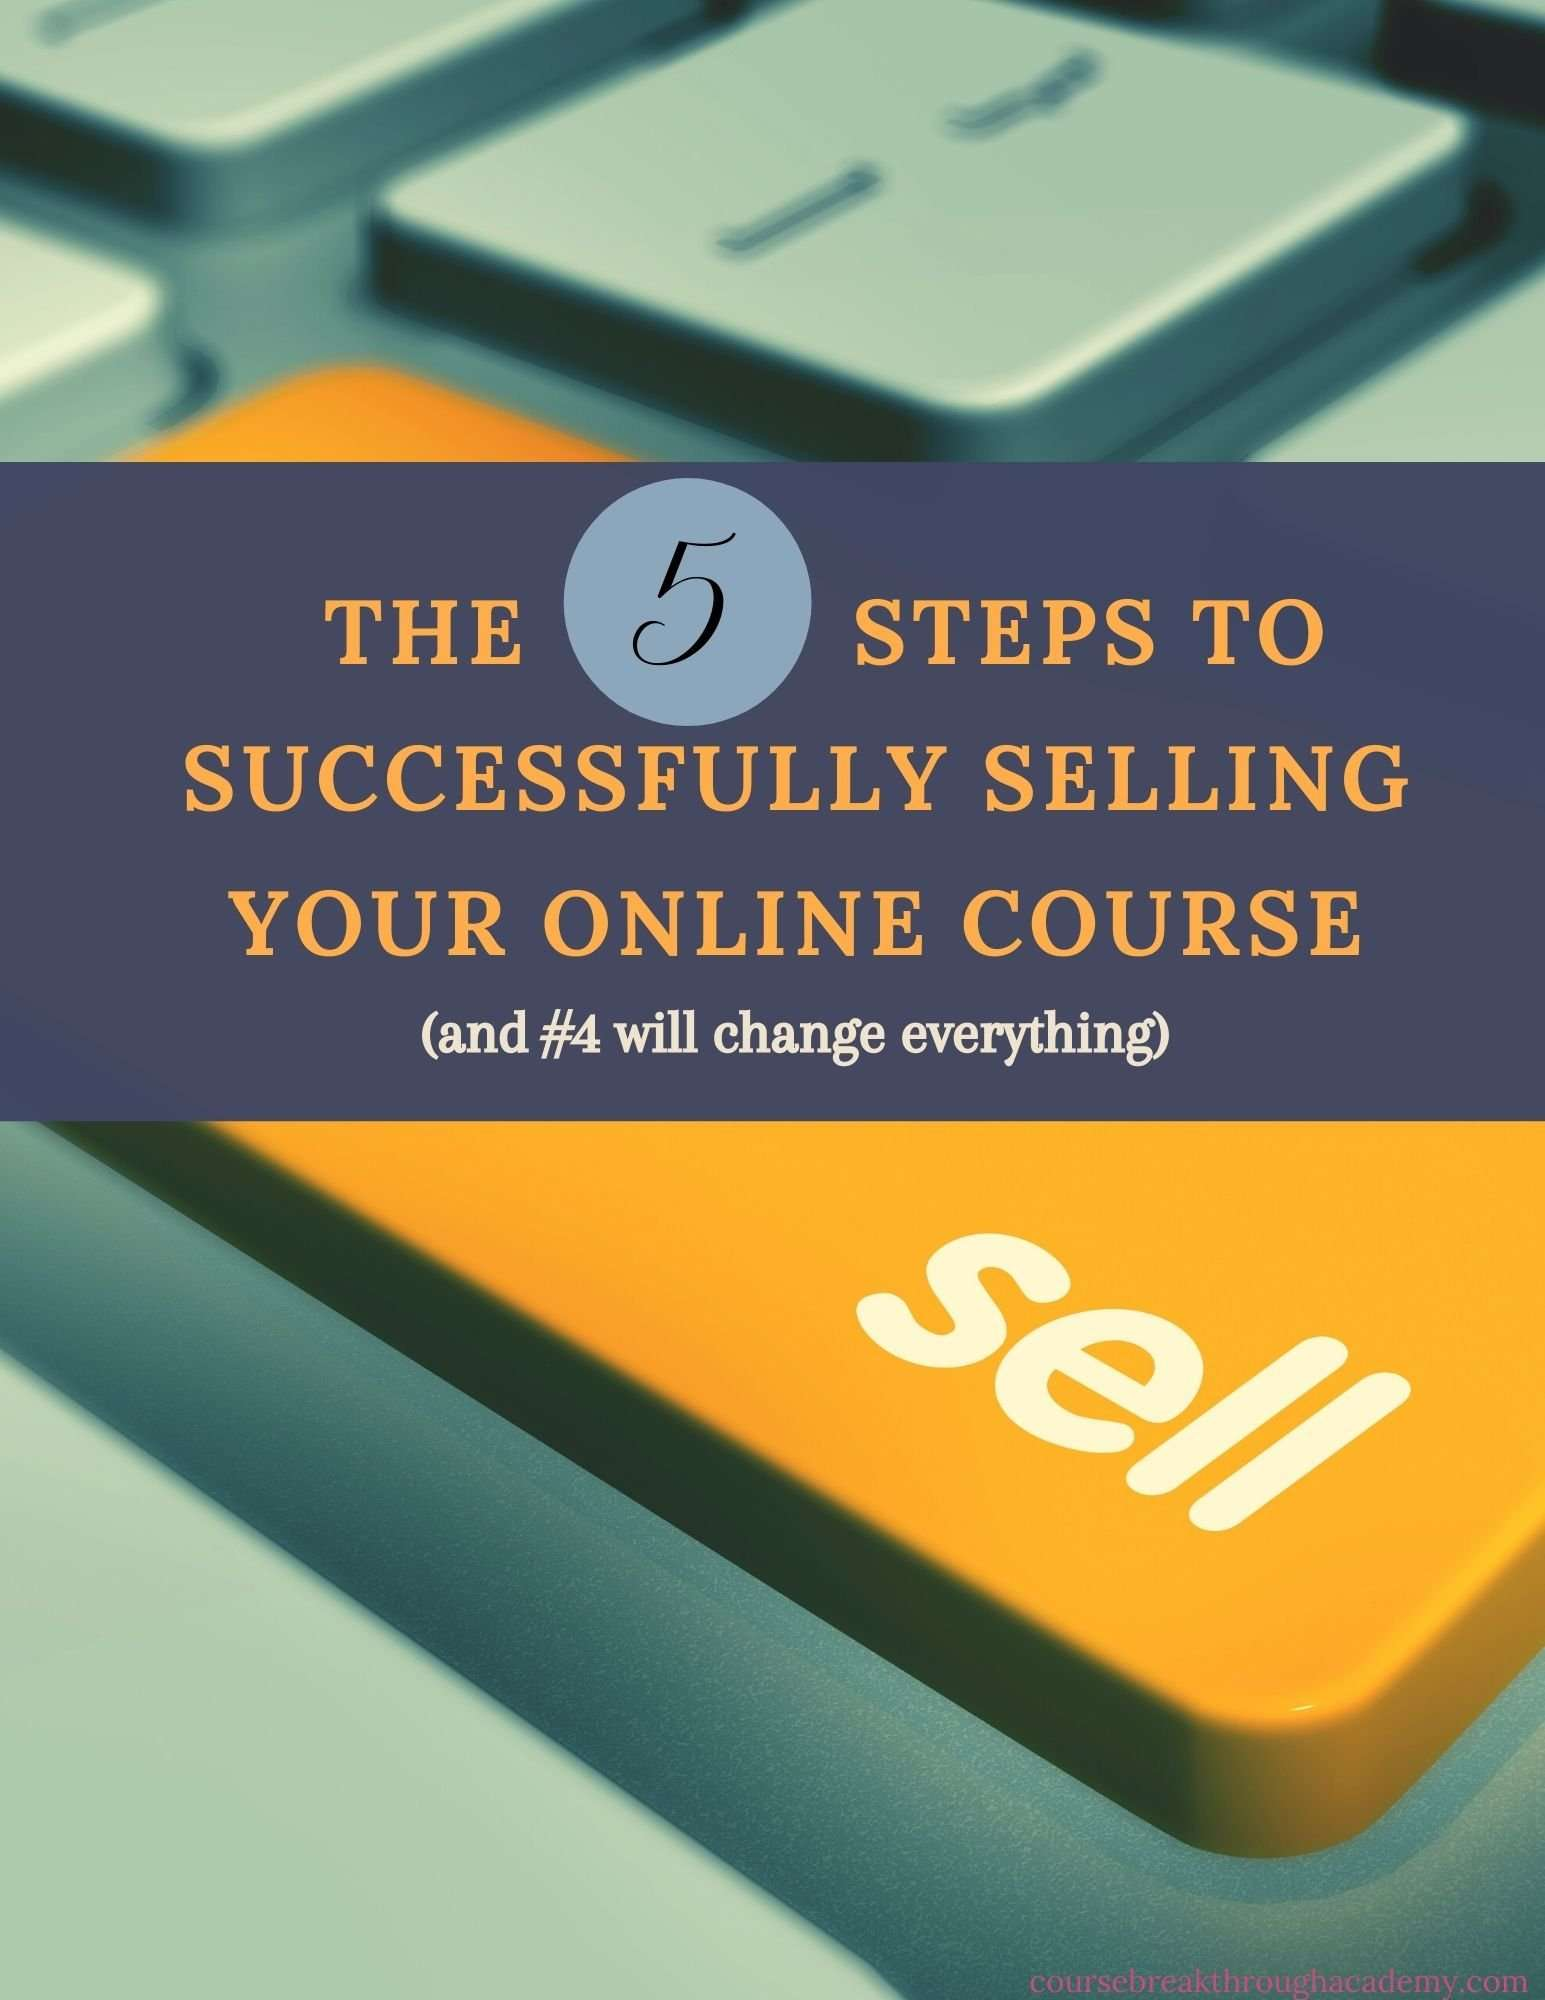 5 Steps To Successfully Selling Your Online Course Download